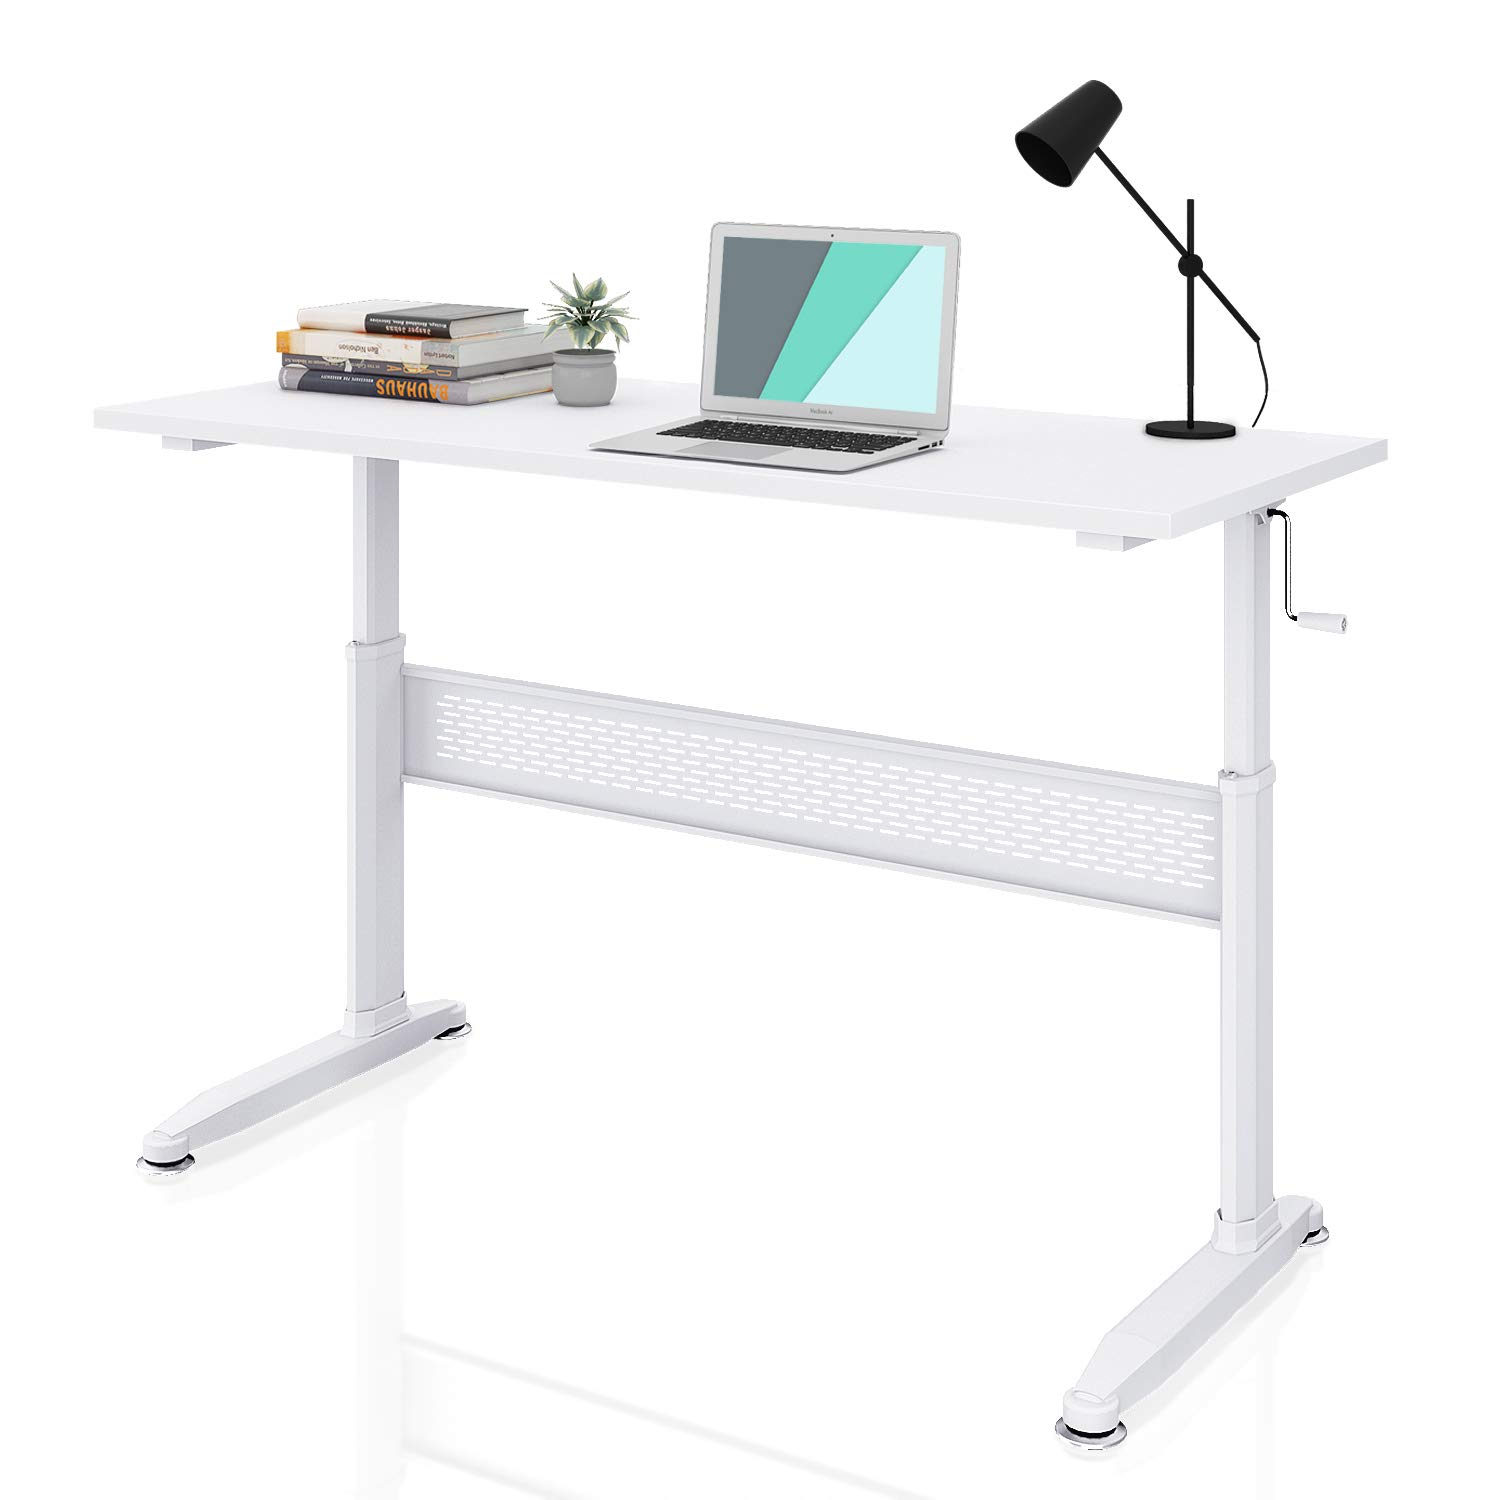 DEVAISE Adjustable Height Standing Desk 55 Inch with Crank Handle/White by DEVAISE